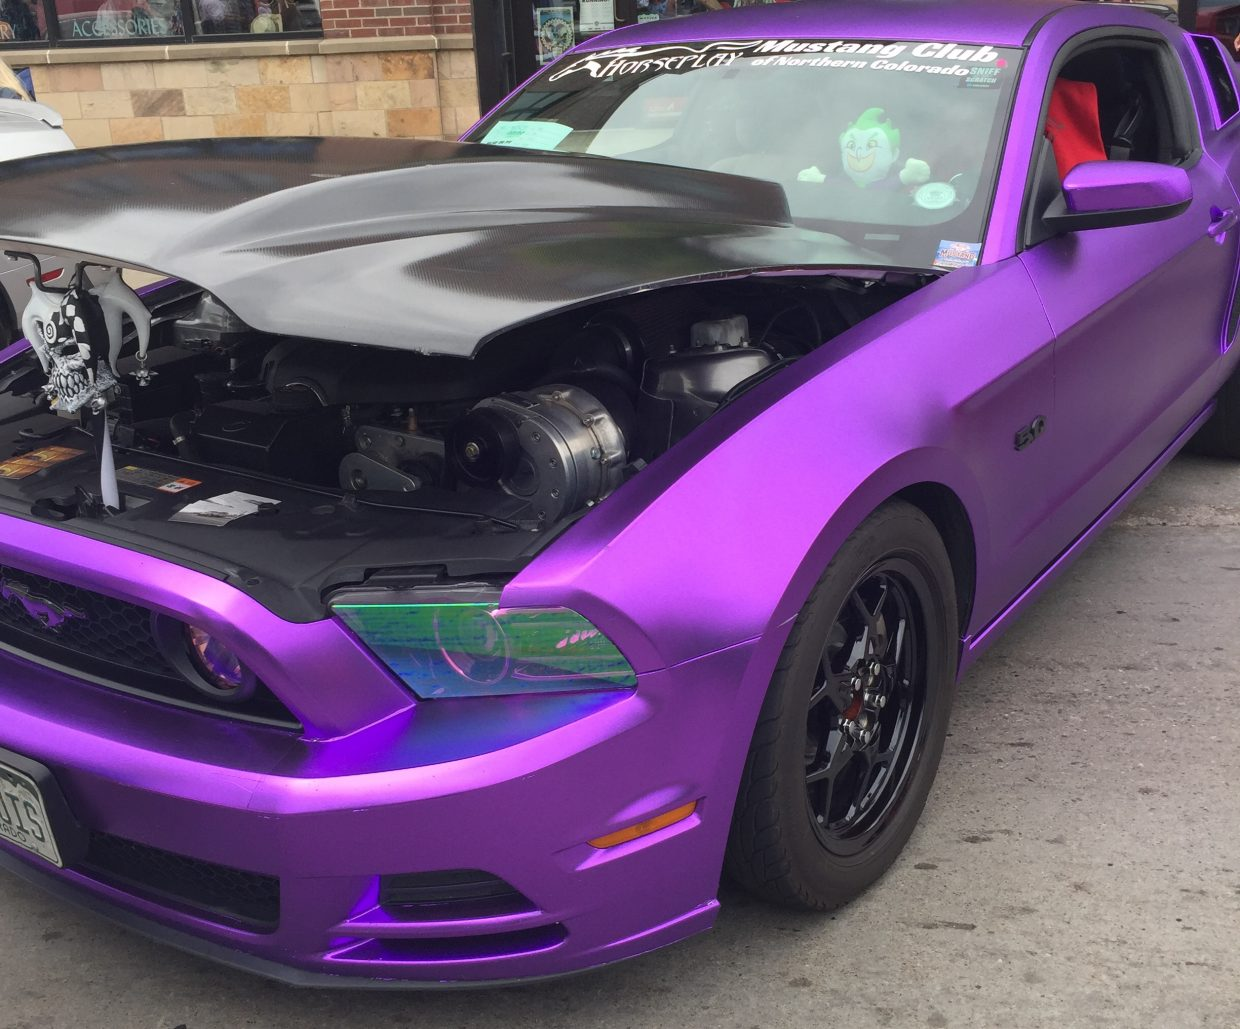 A purple mustang stands out during the Mustang Round-Up.